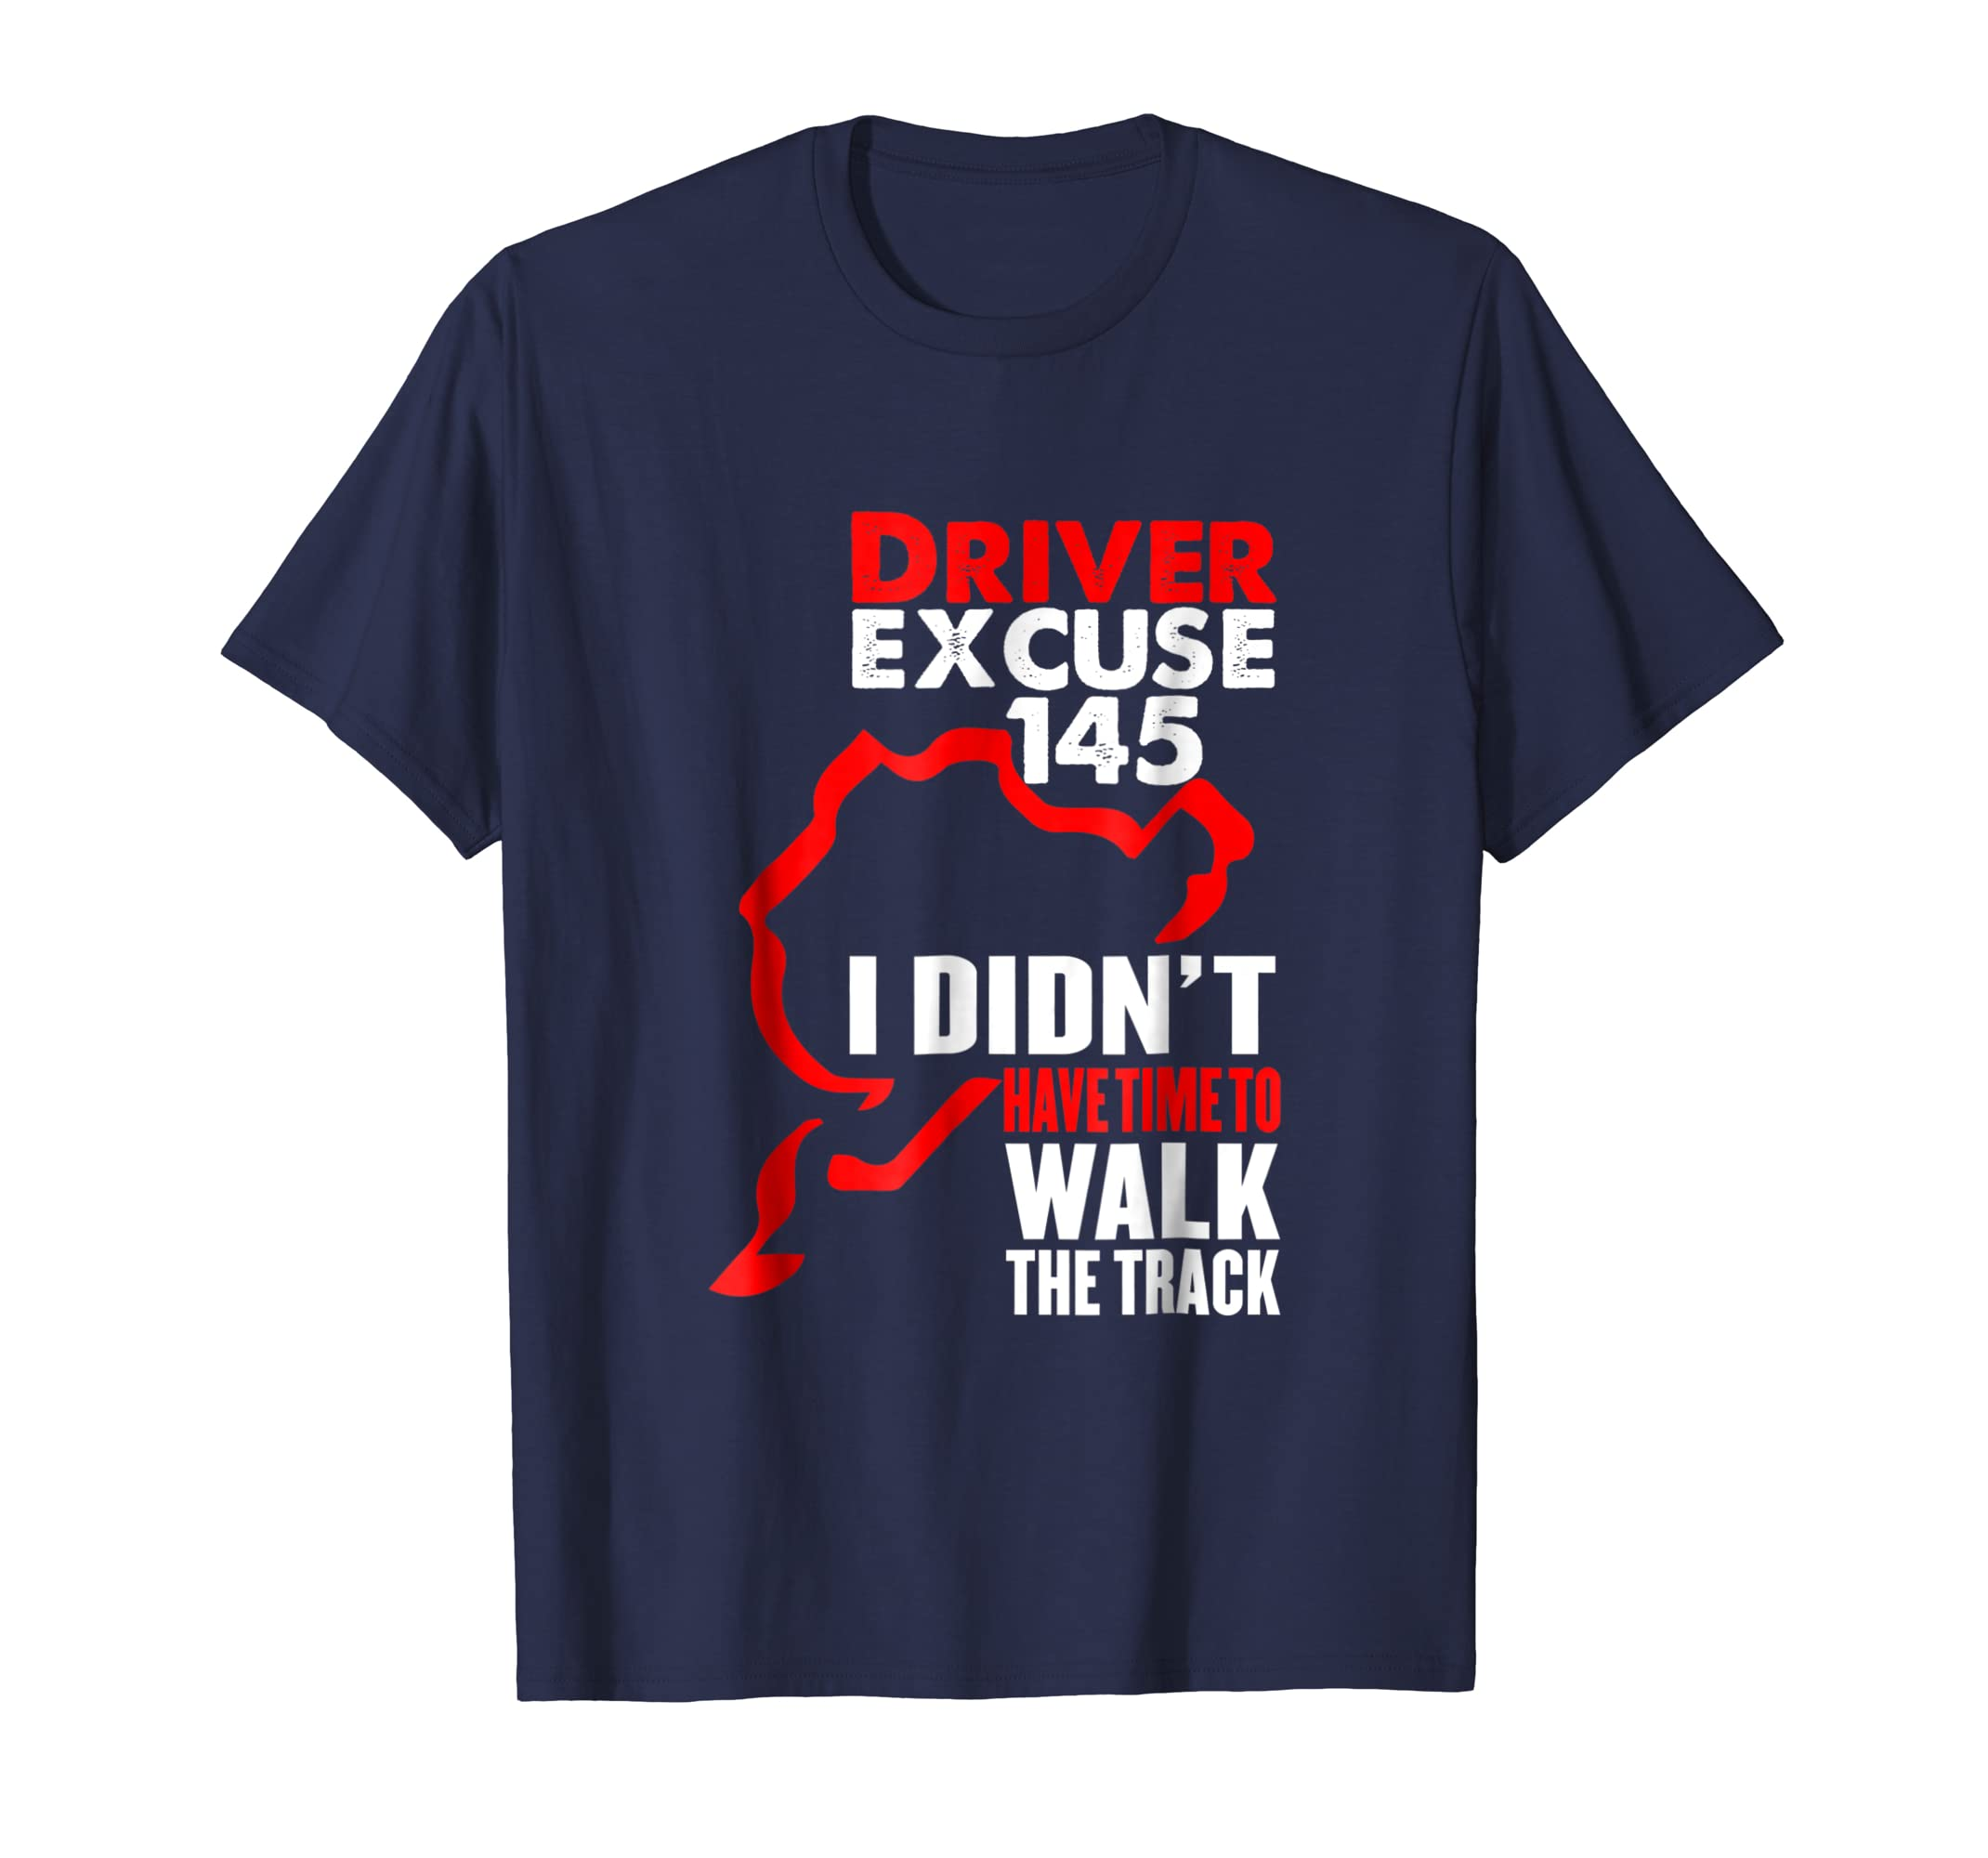 Racing driver excuses tee shirt time to walk the track-azvn